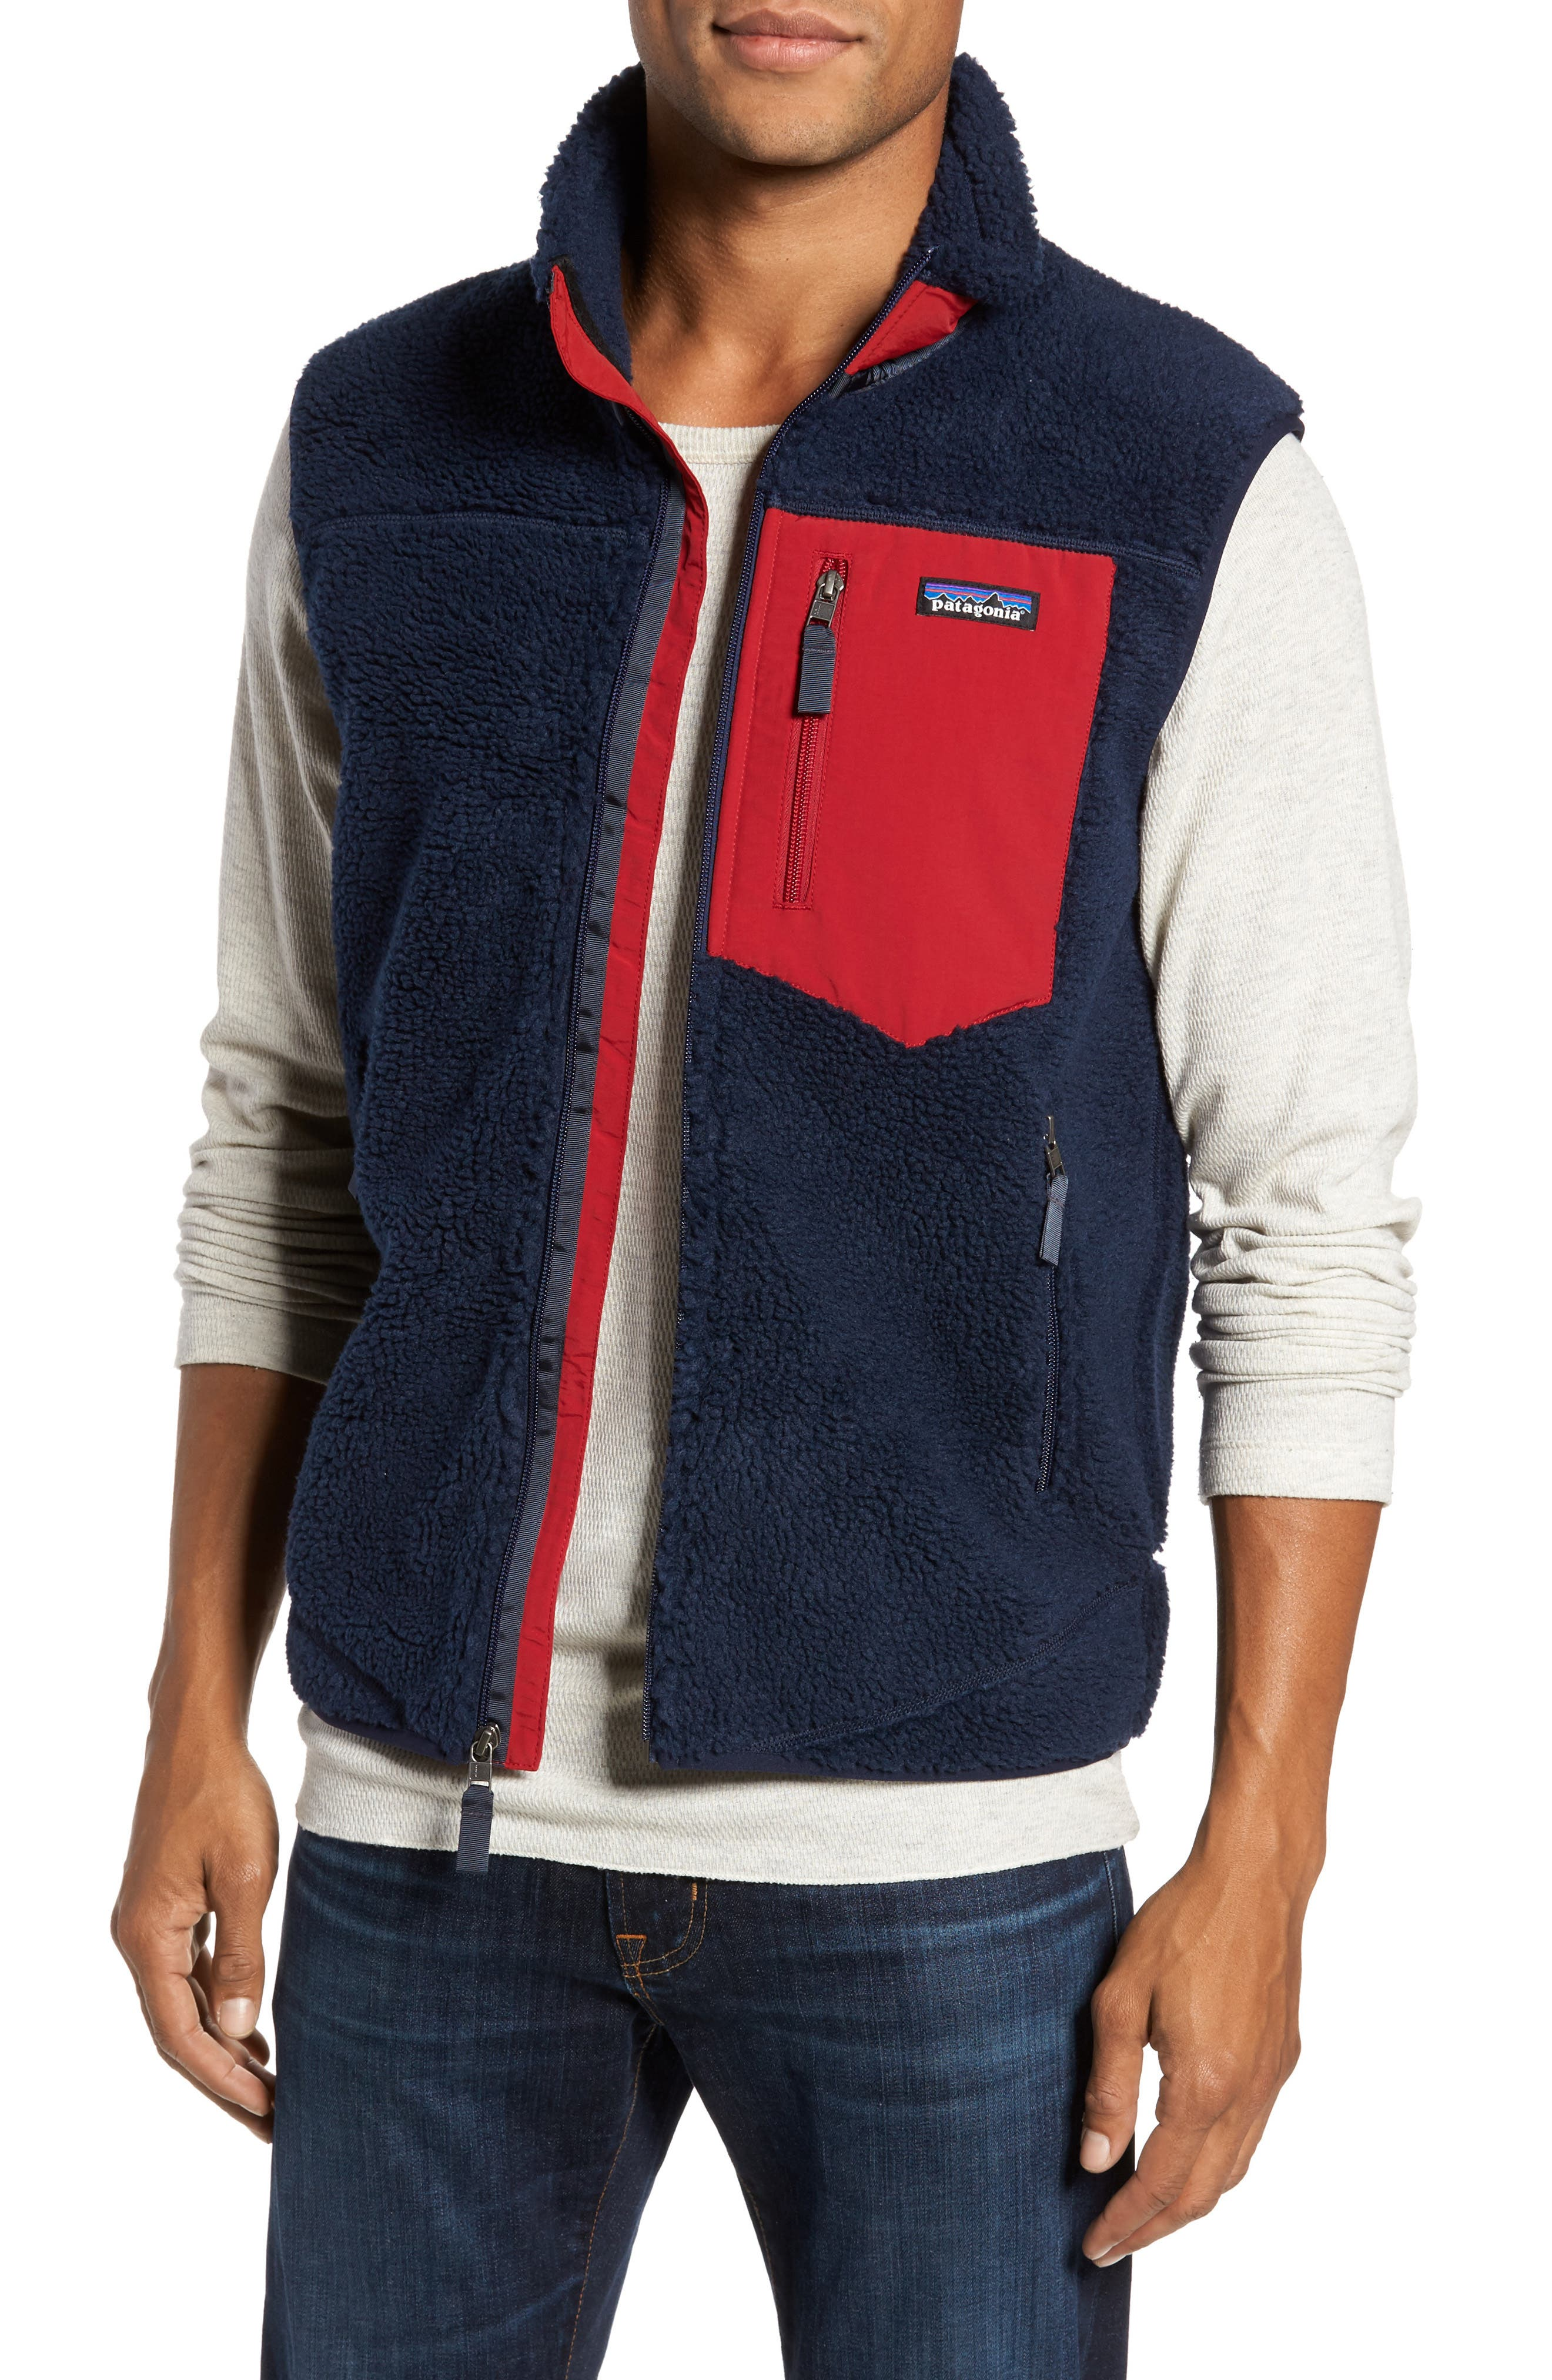 Classic Retro-X<sup>®</sup> Waterproof Vest,                             Main thumbnail 1, color,                             Navy Blue W/ Classic Red